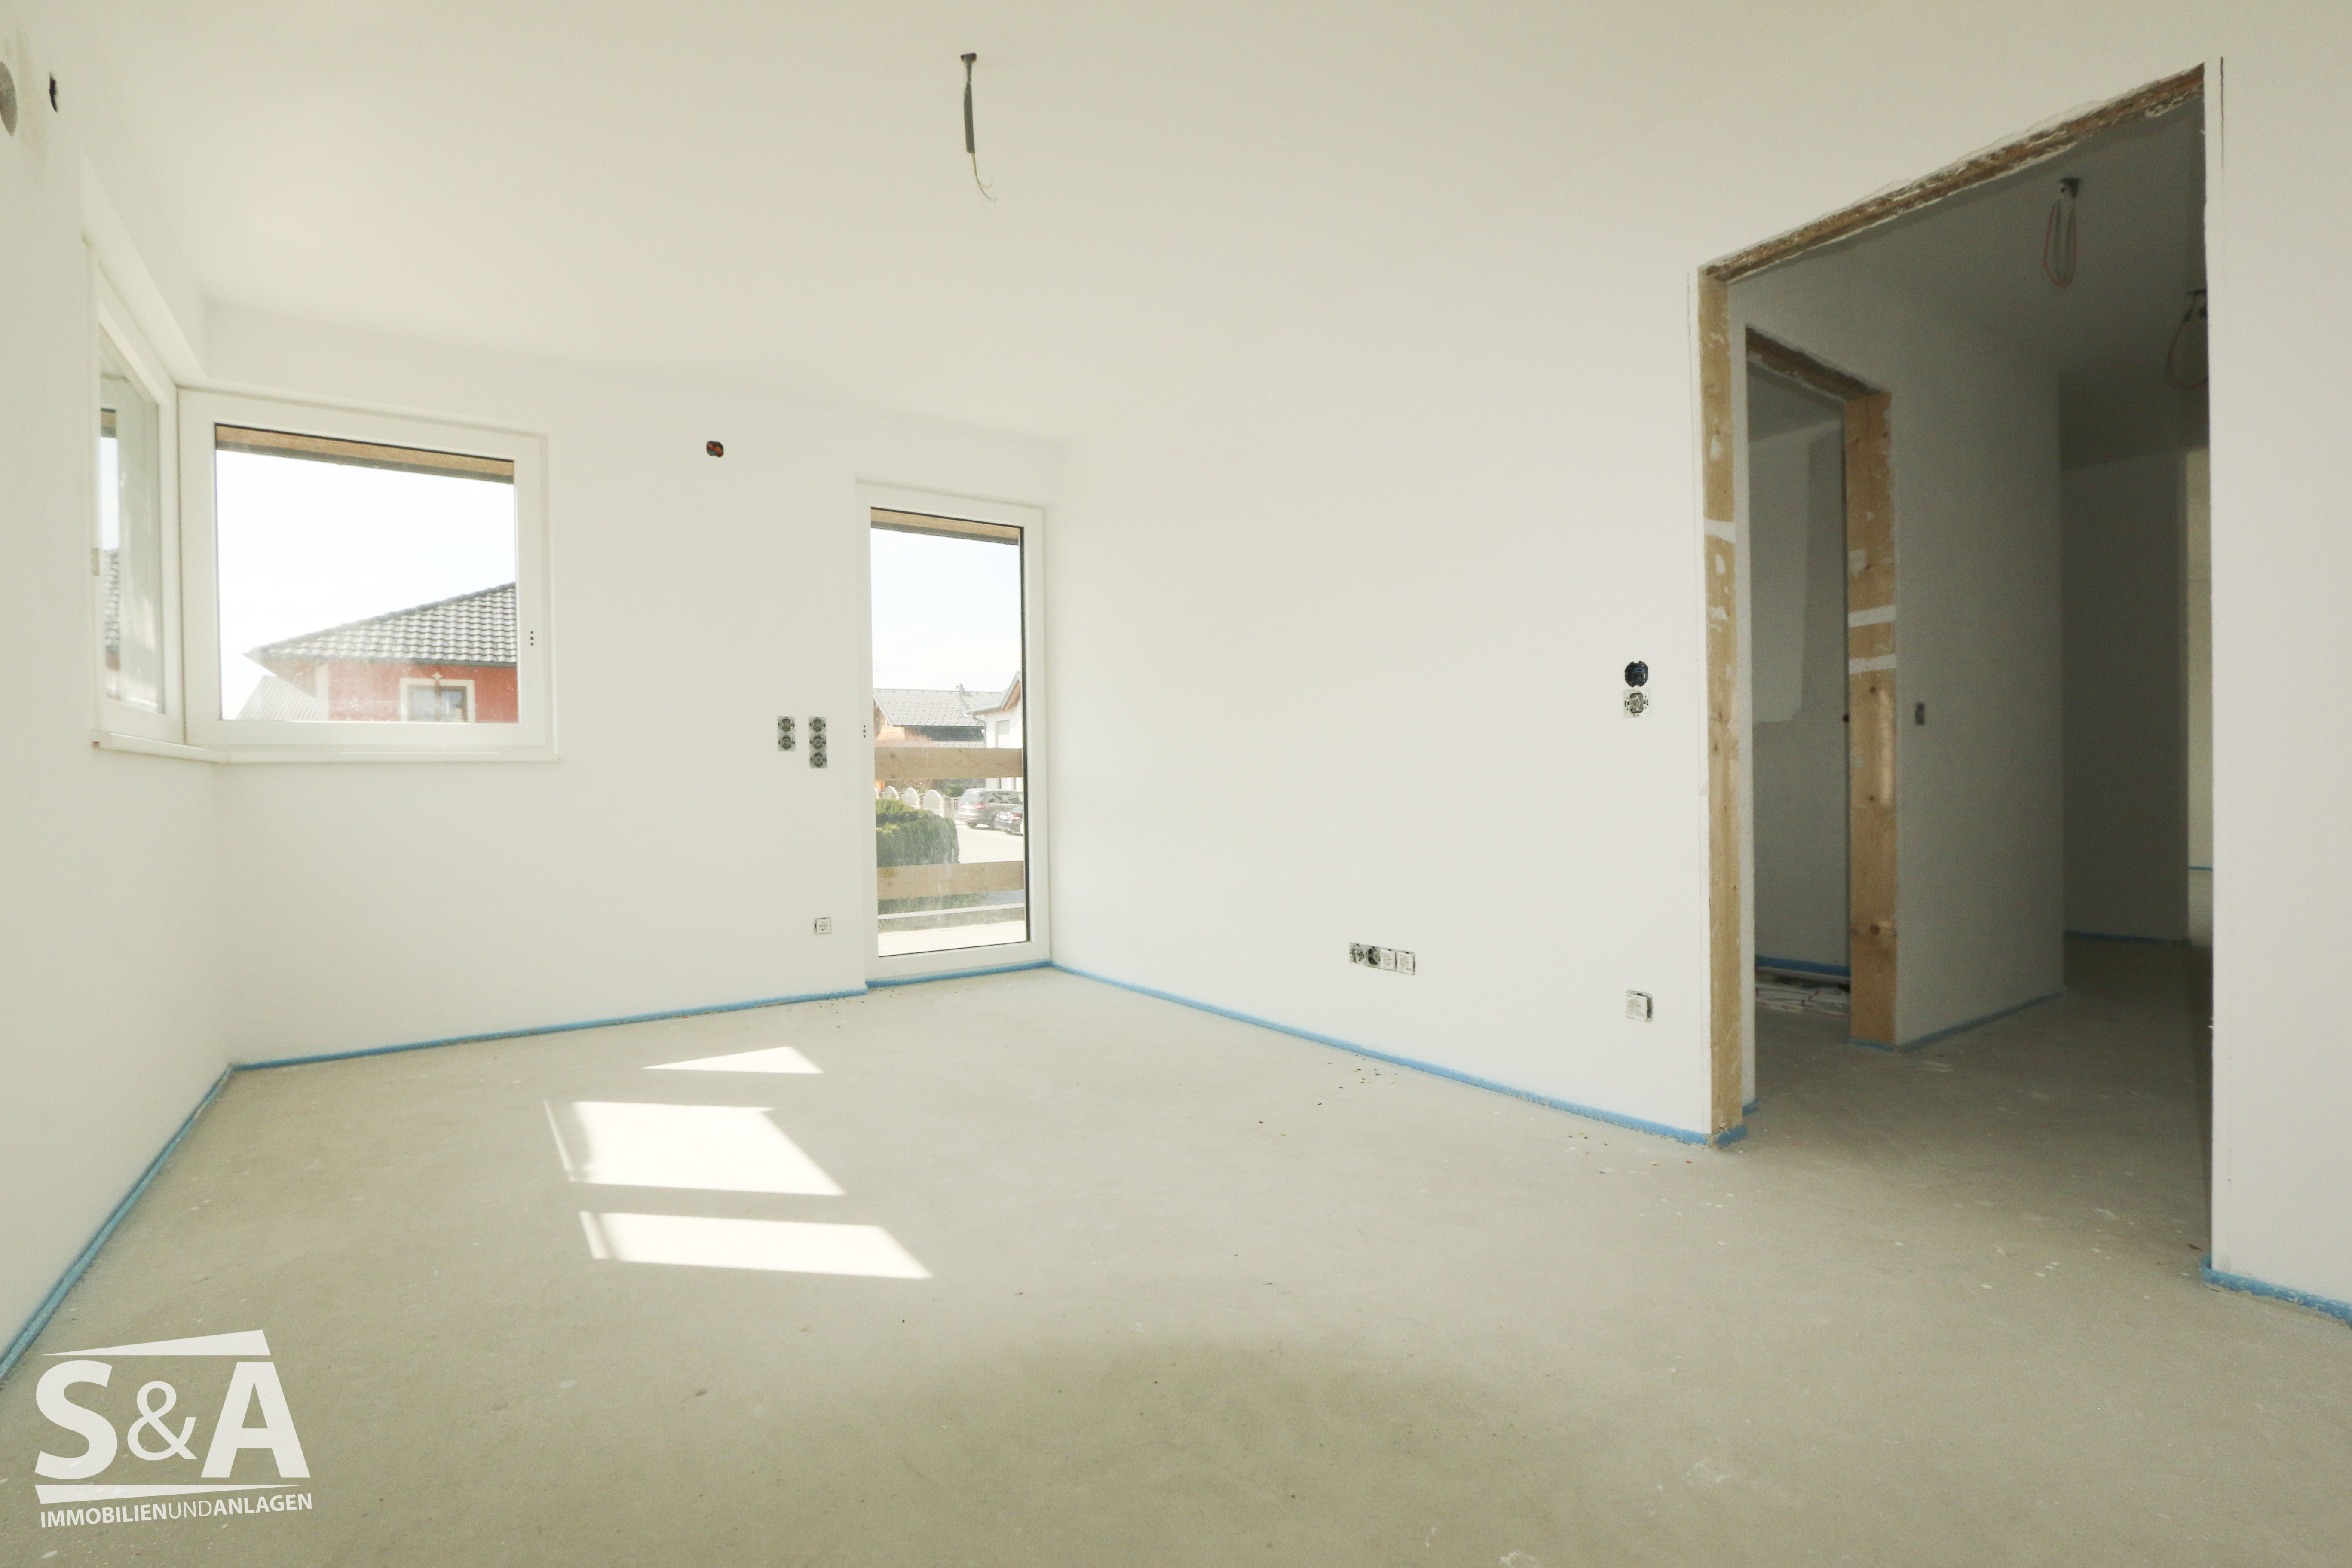 S&A Immobilien-6